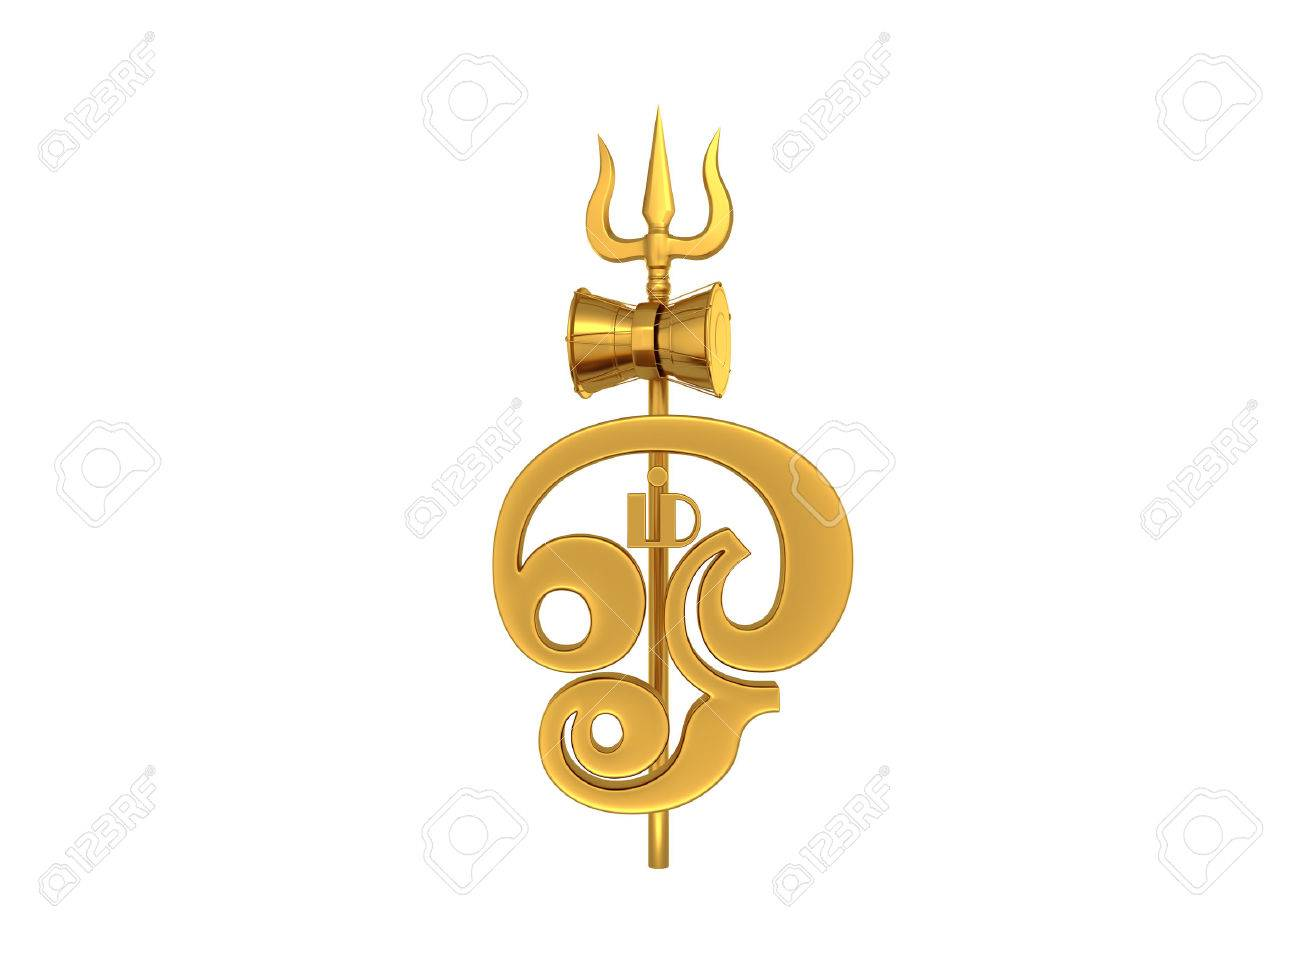 Tamil Om Symbol With Trident Stock Photo Picture And Royalty Free